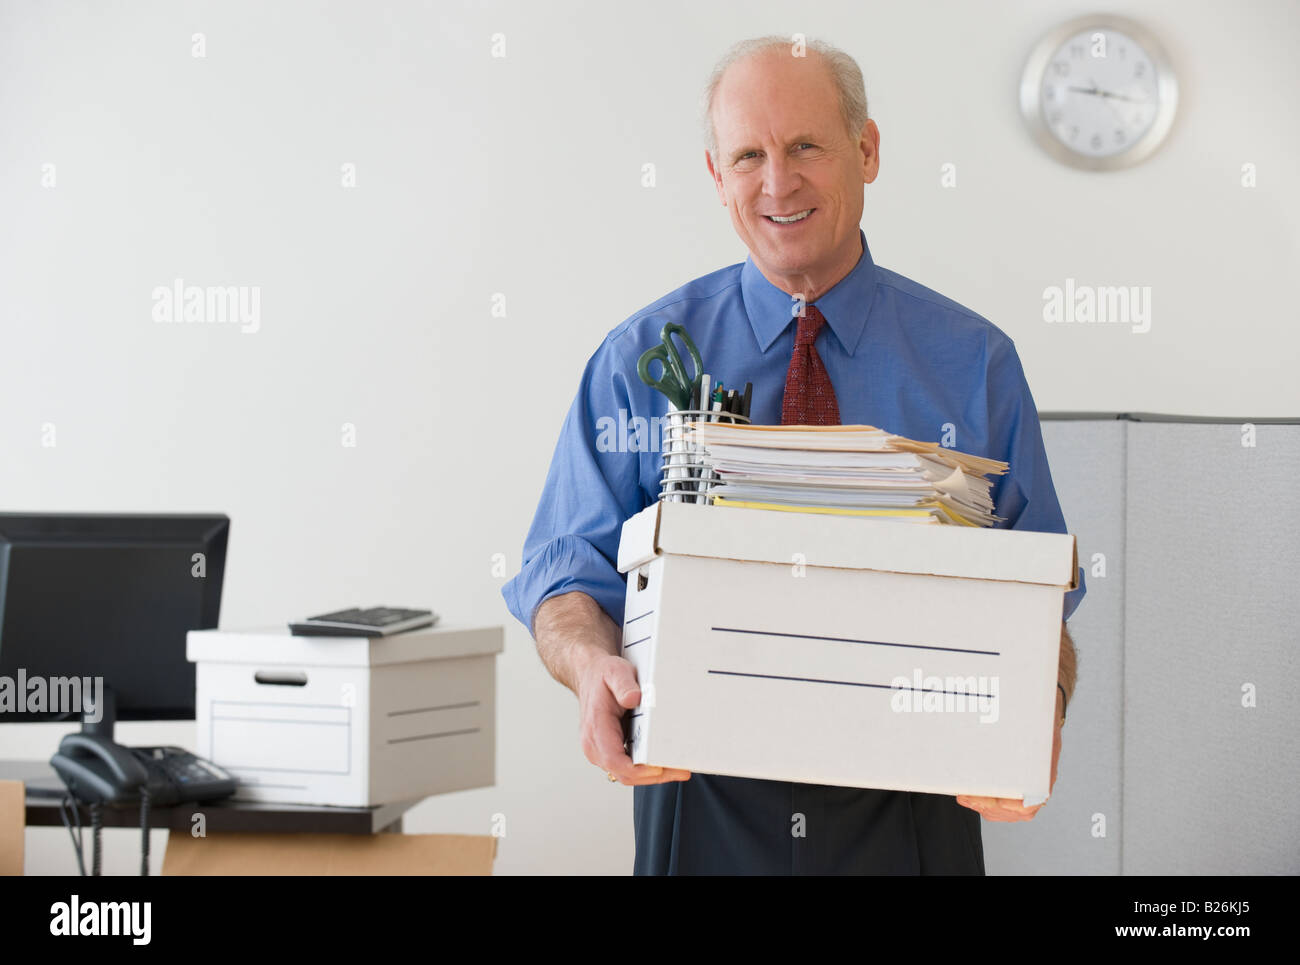 Senior businessman carrying box and office supplies - Stock Image